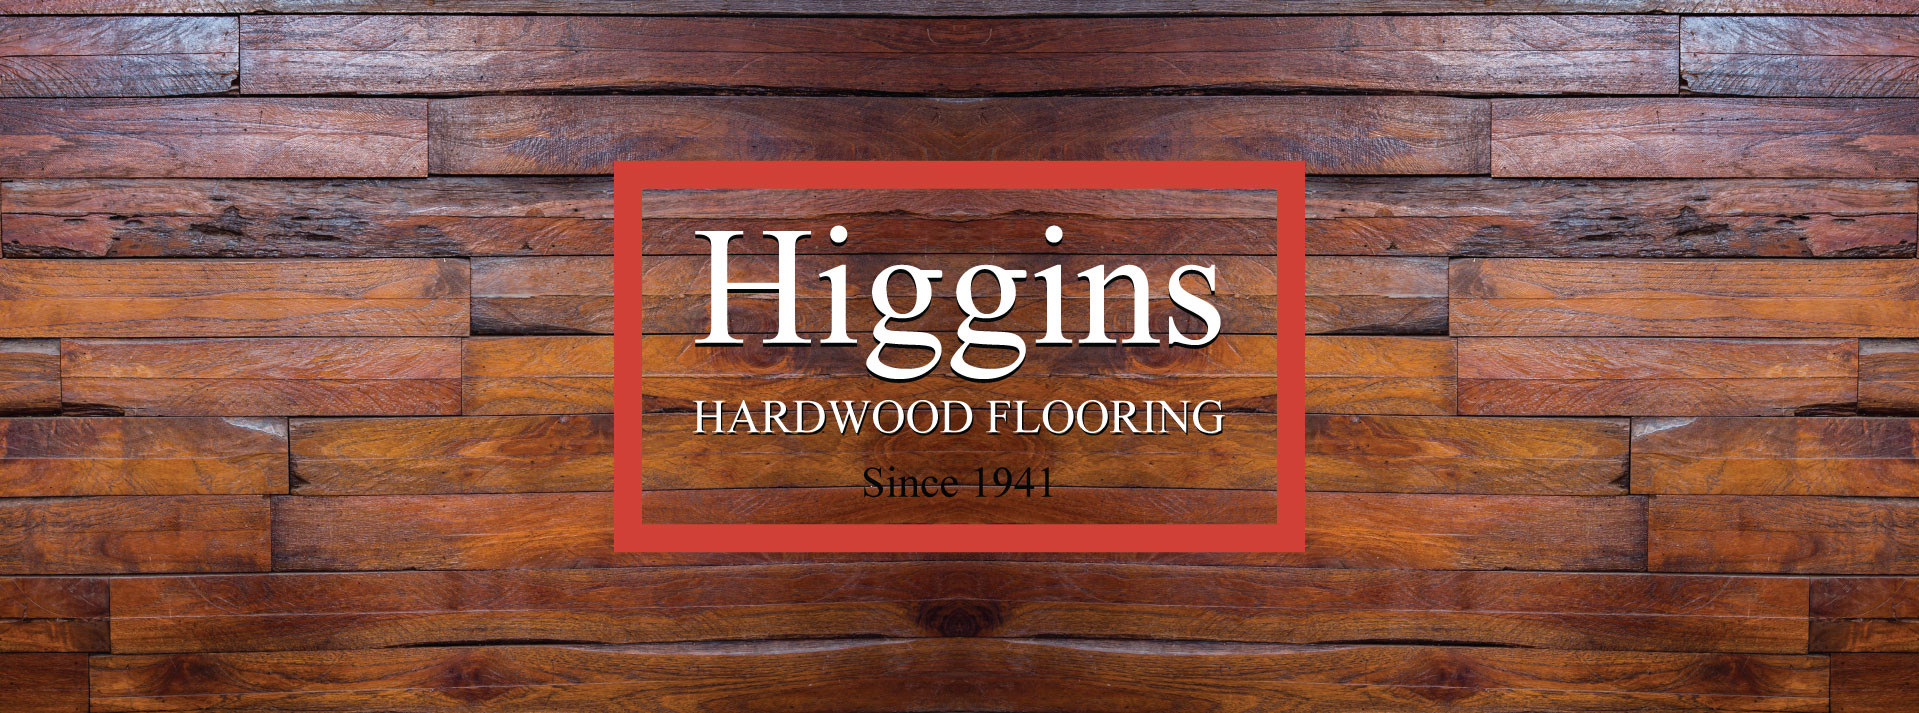 Hardwood Flooring Business Names Of Higgins Hardwood Flooring In Peterborough Oshawa Lindsay Ajax for Office Hours